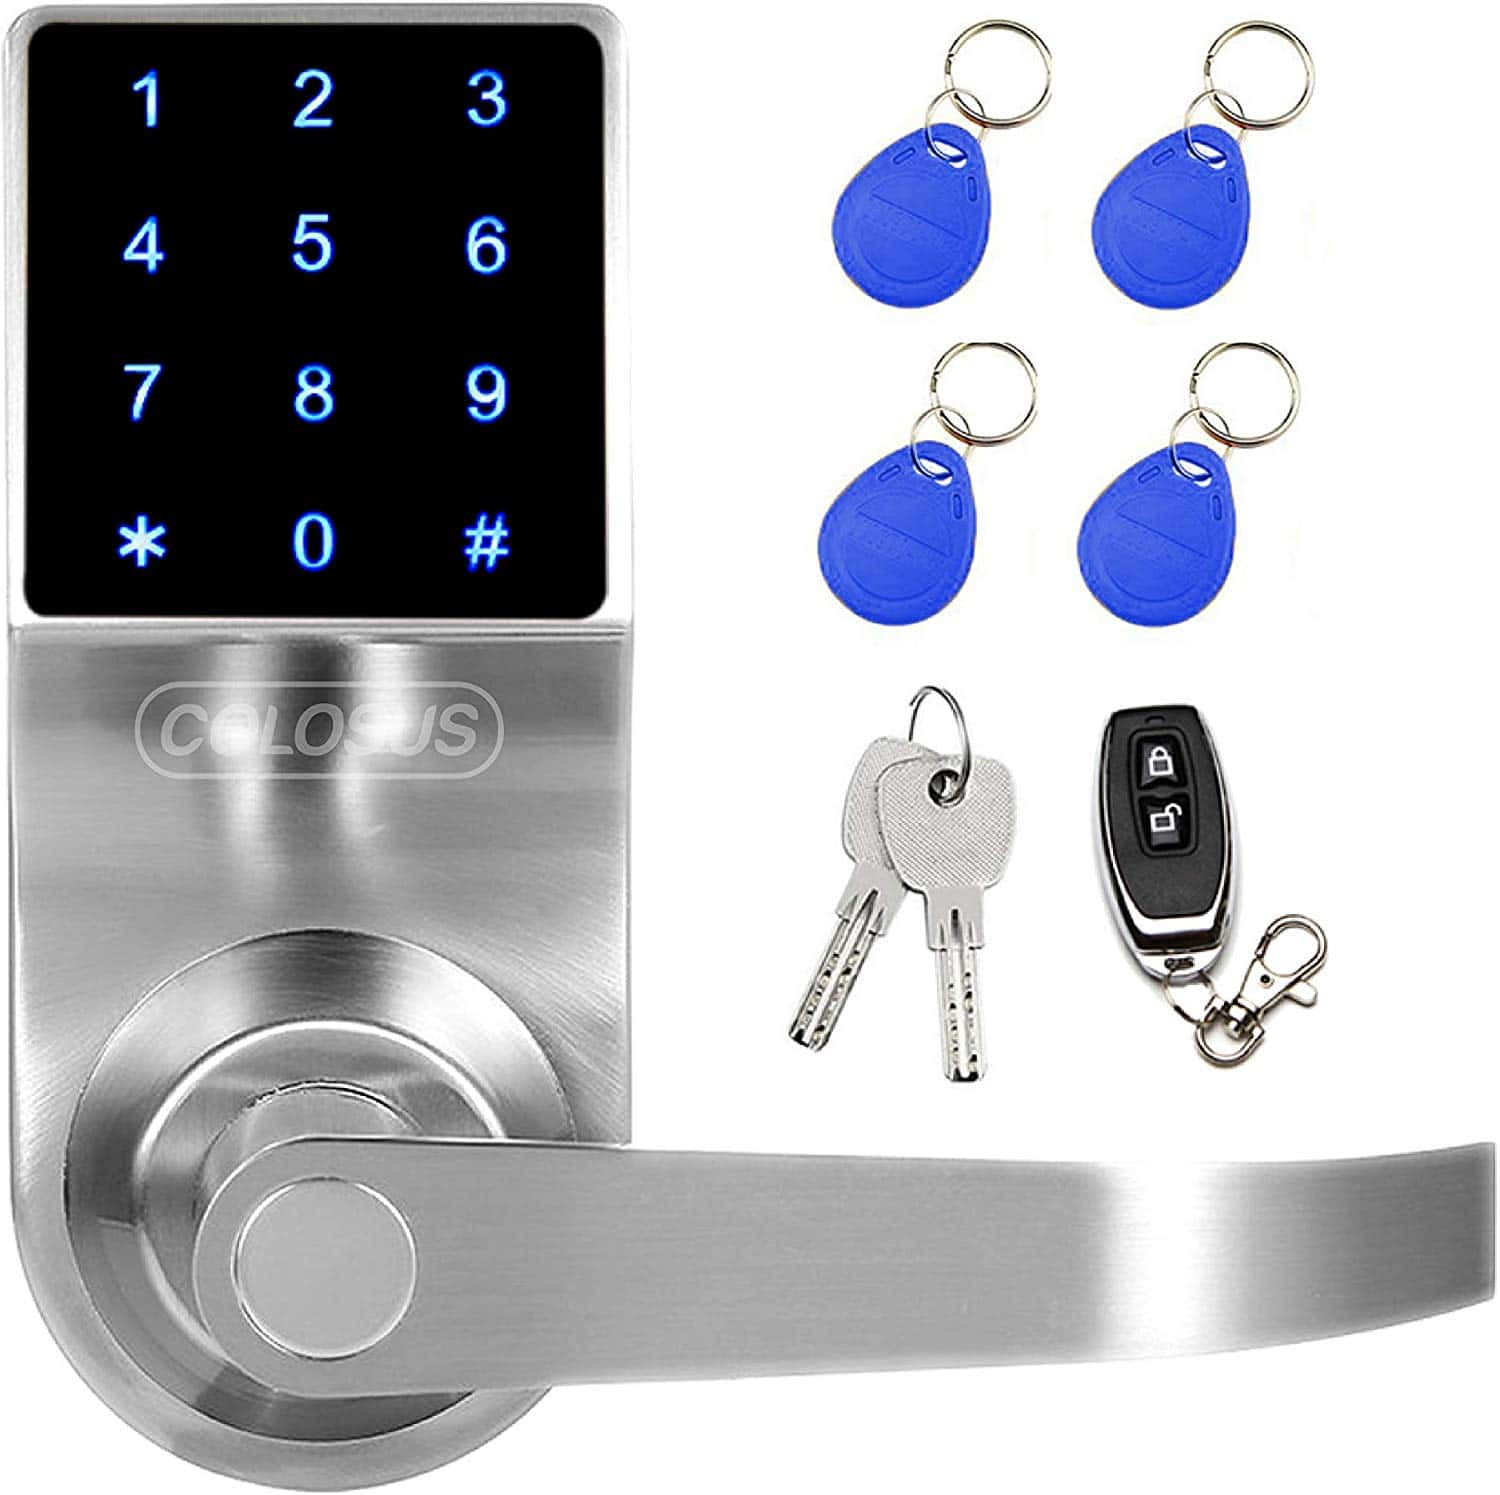 COLOSUS Keyless Electronic Digital Smart Door Lock.